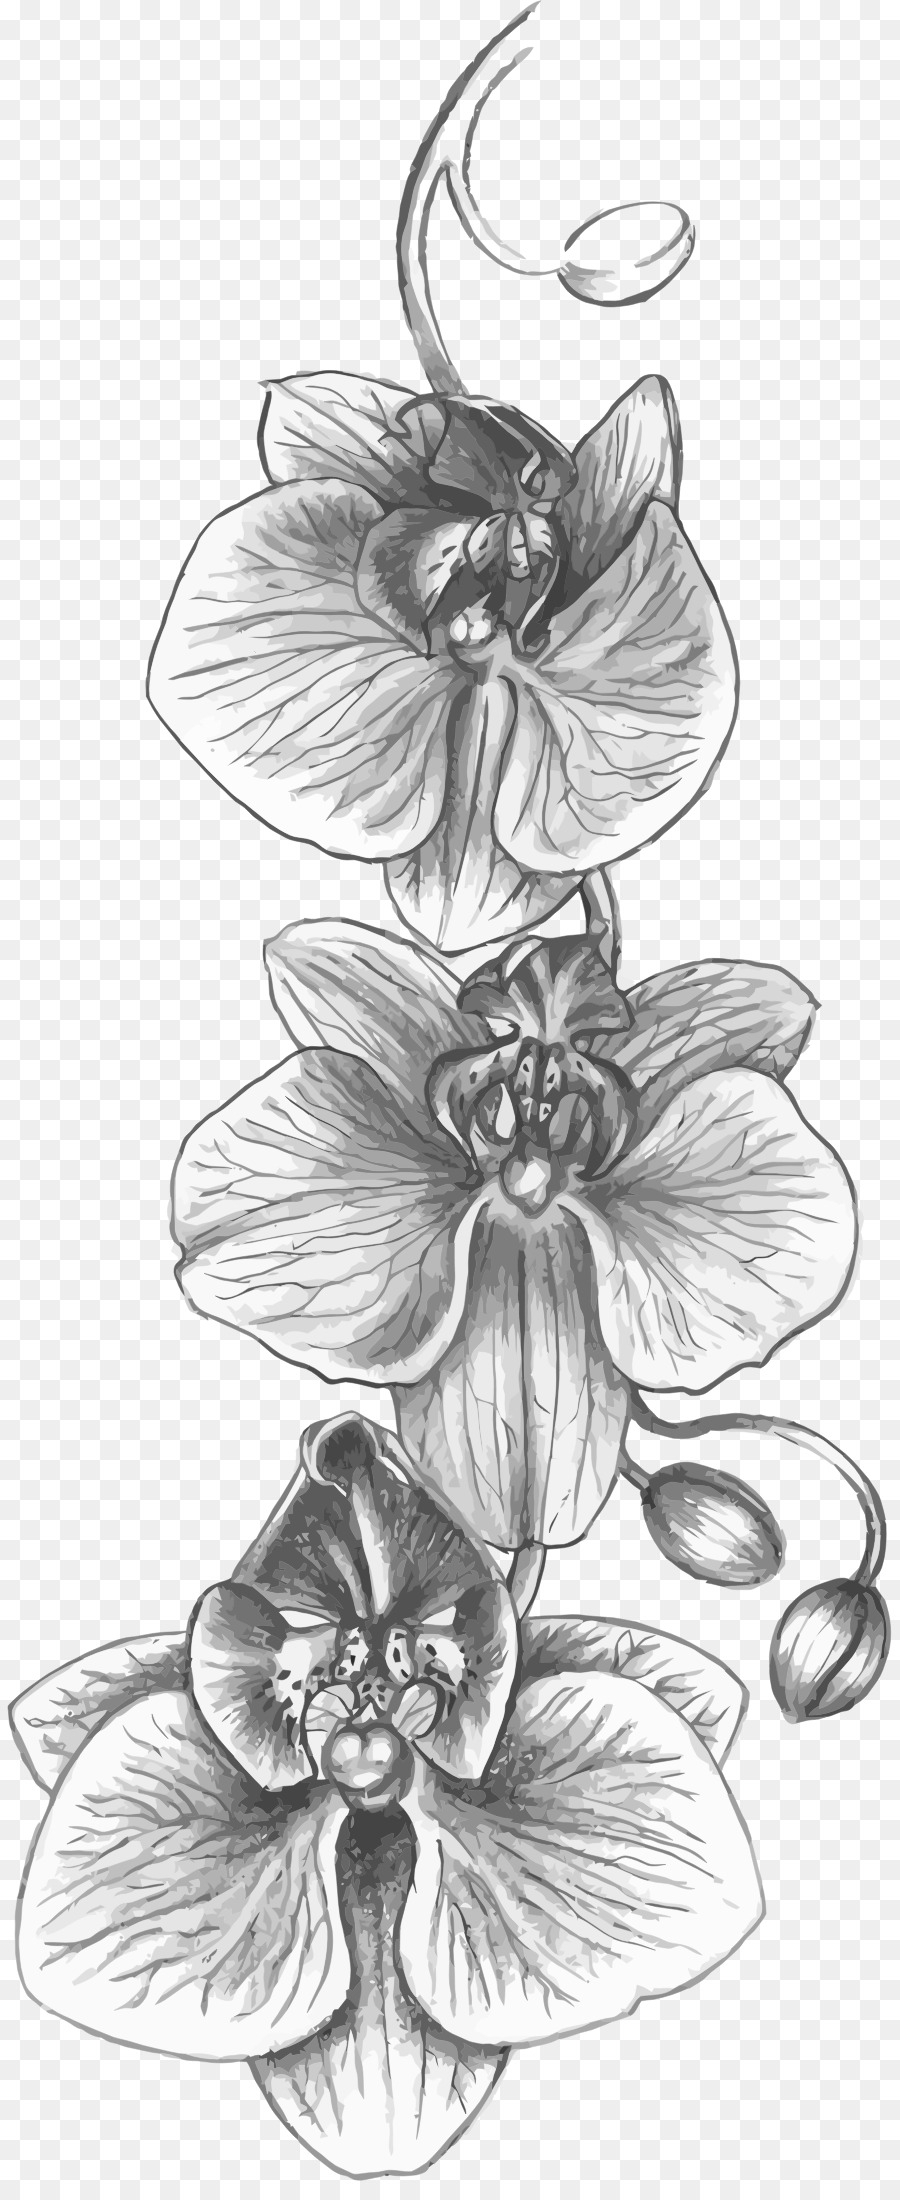 orchids drawings gousicteco orchid drawing easy images drawings orchids